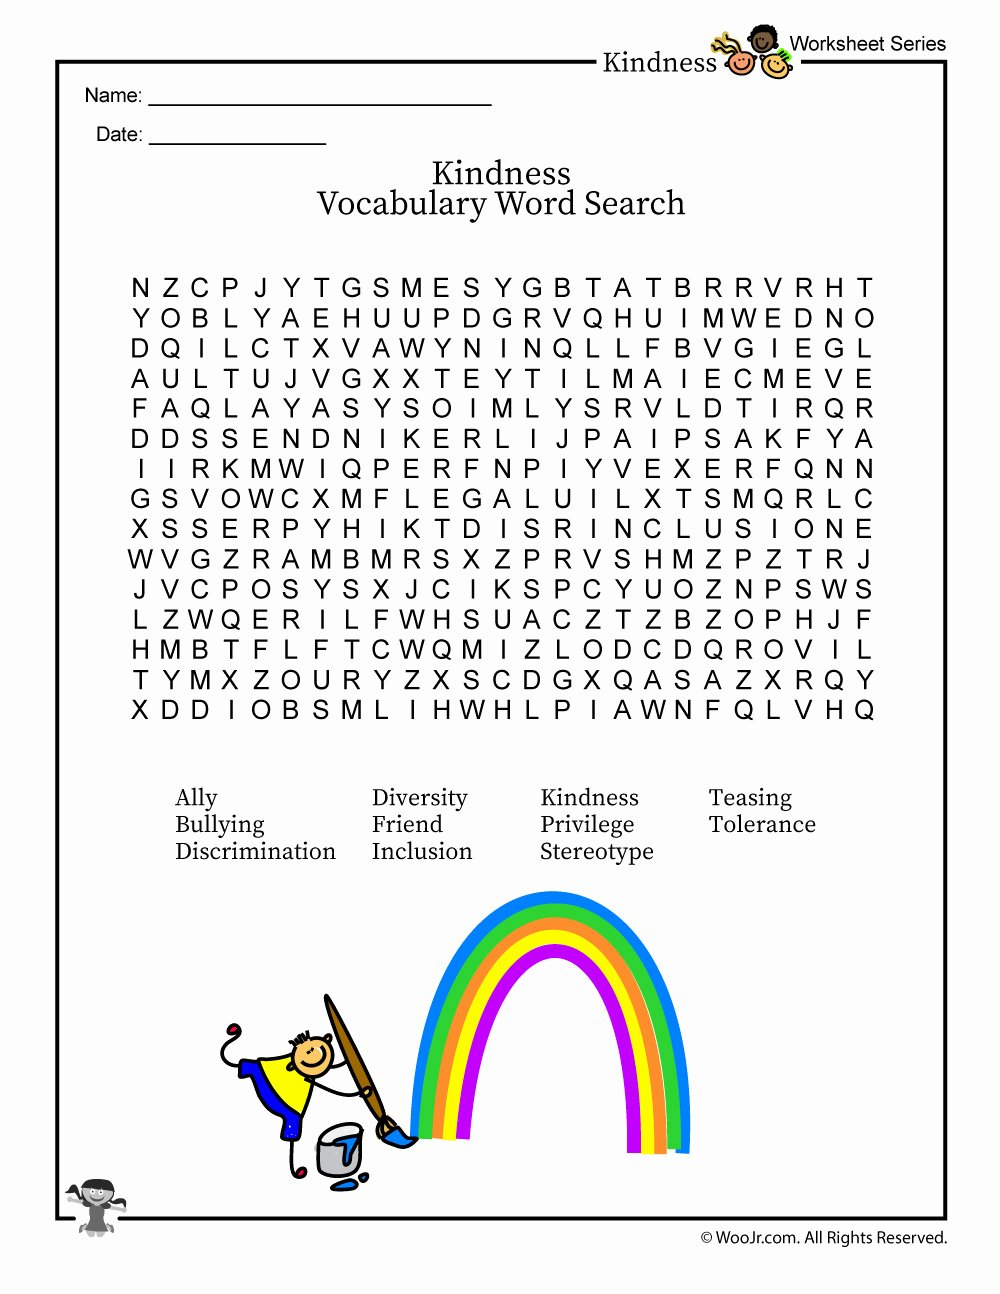 Kindness Worksheets for Elementary Students Fresh Classroom Kindness & Inclusion Vocabulary Word Search